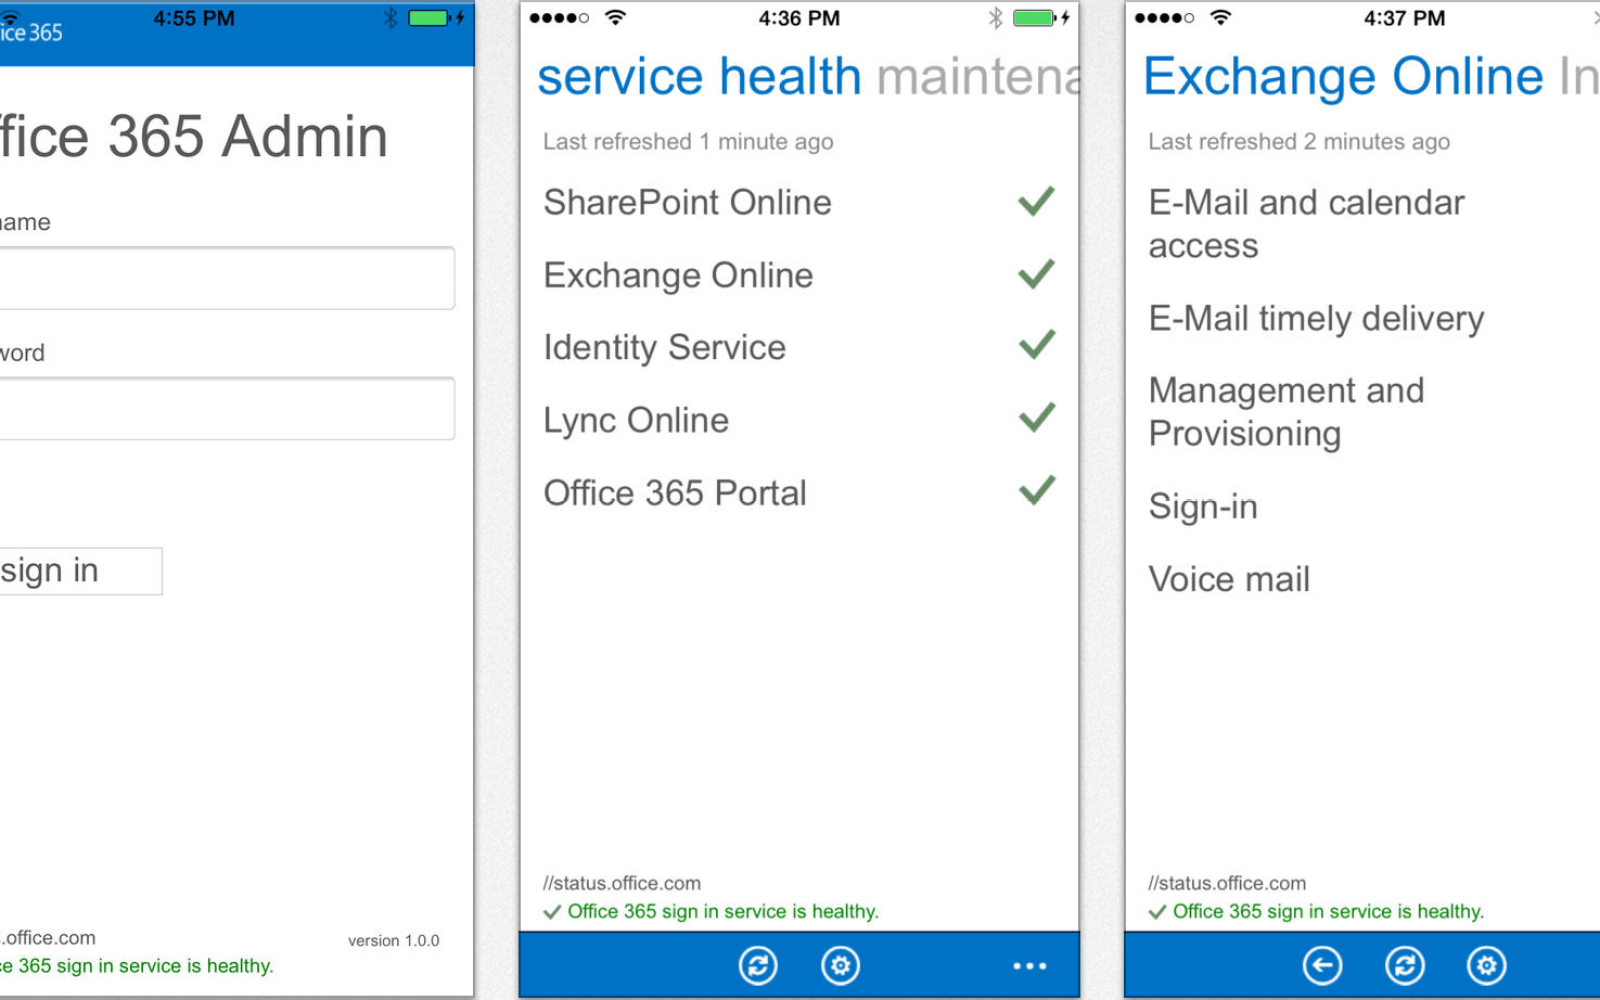 Microsoft releases iOS app for IT admins to manage Office 365 servers